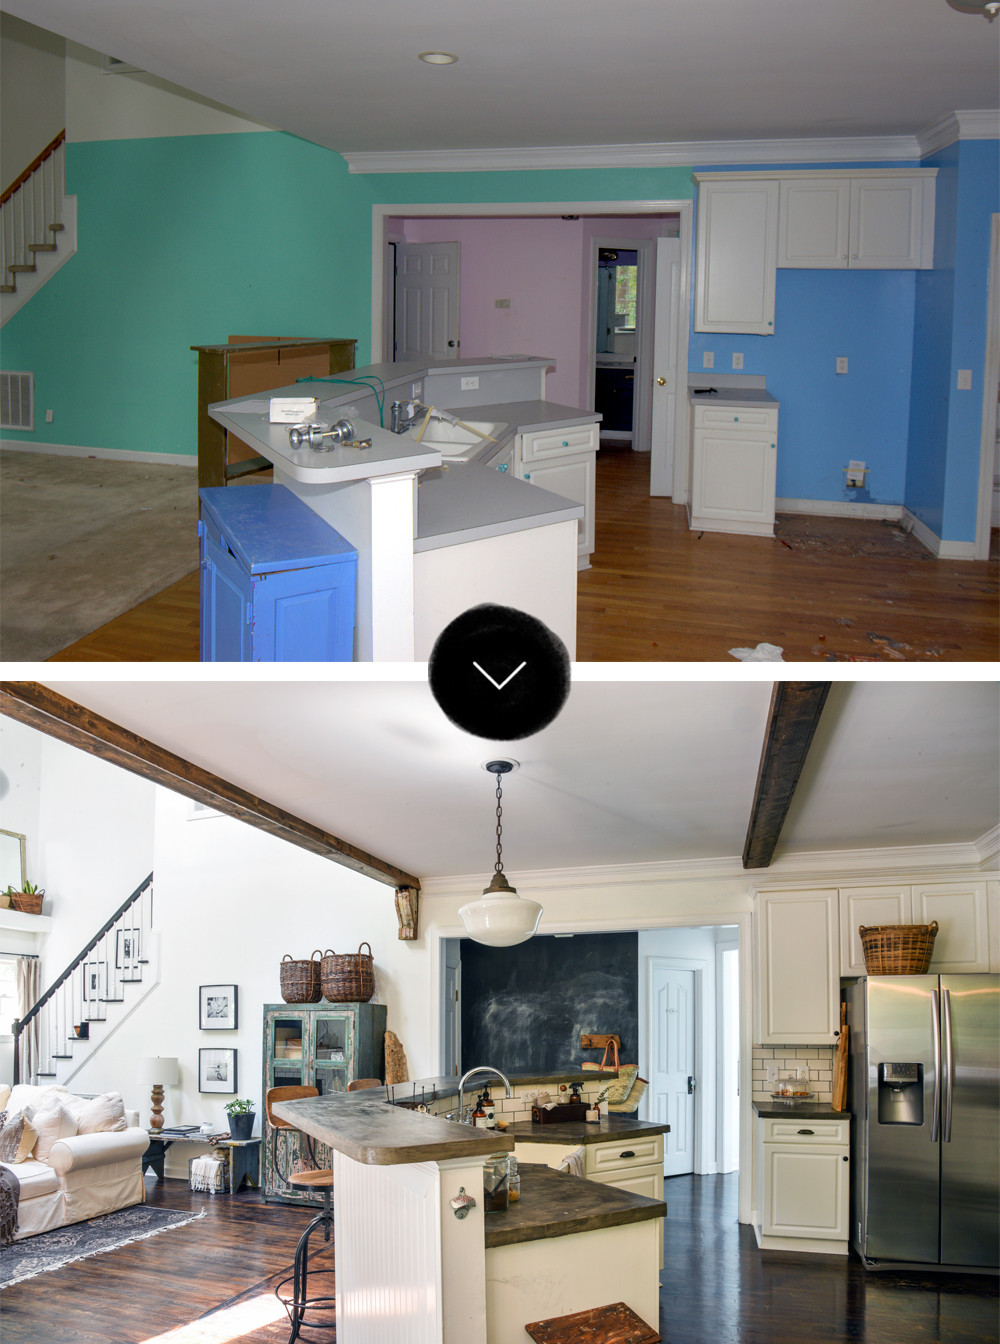 Faux Kitchen Cabinet Doors Before & After: A Reclaimed Traditional Brick Foreclosure